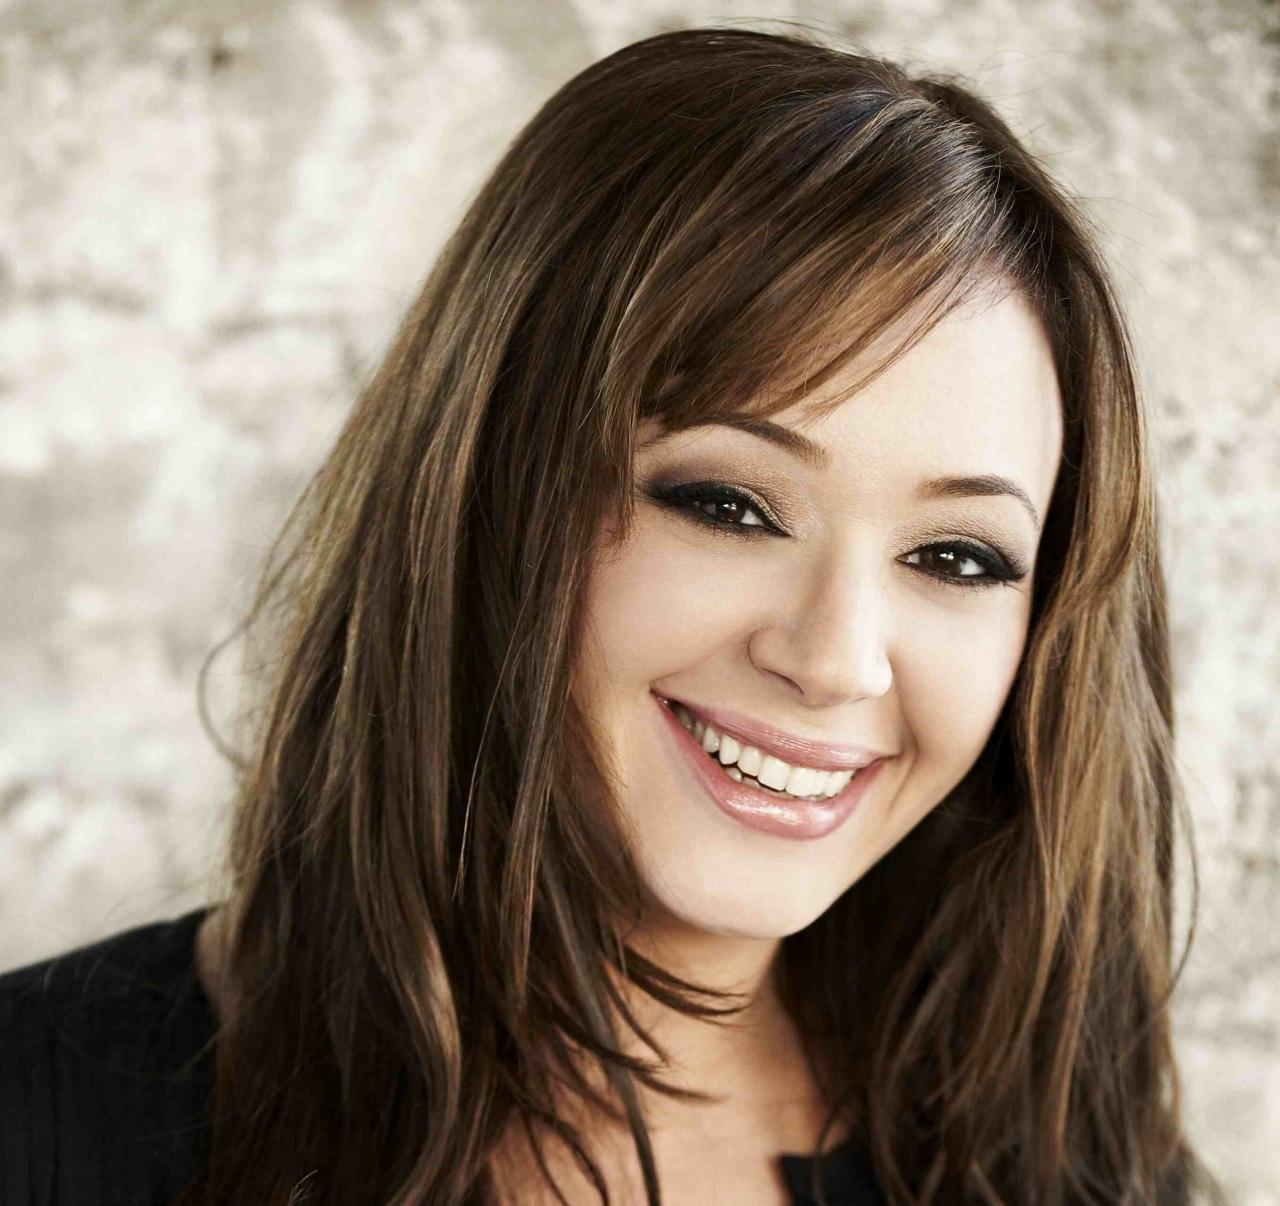 leah remini hot cute smile images